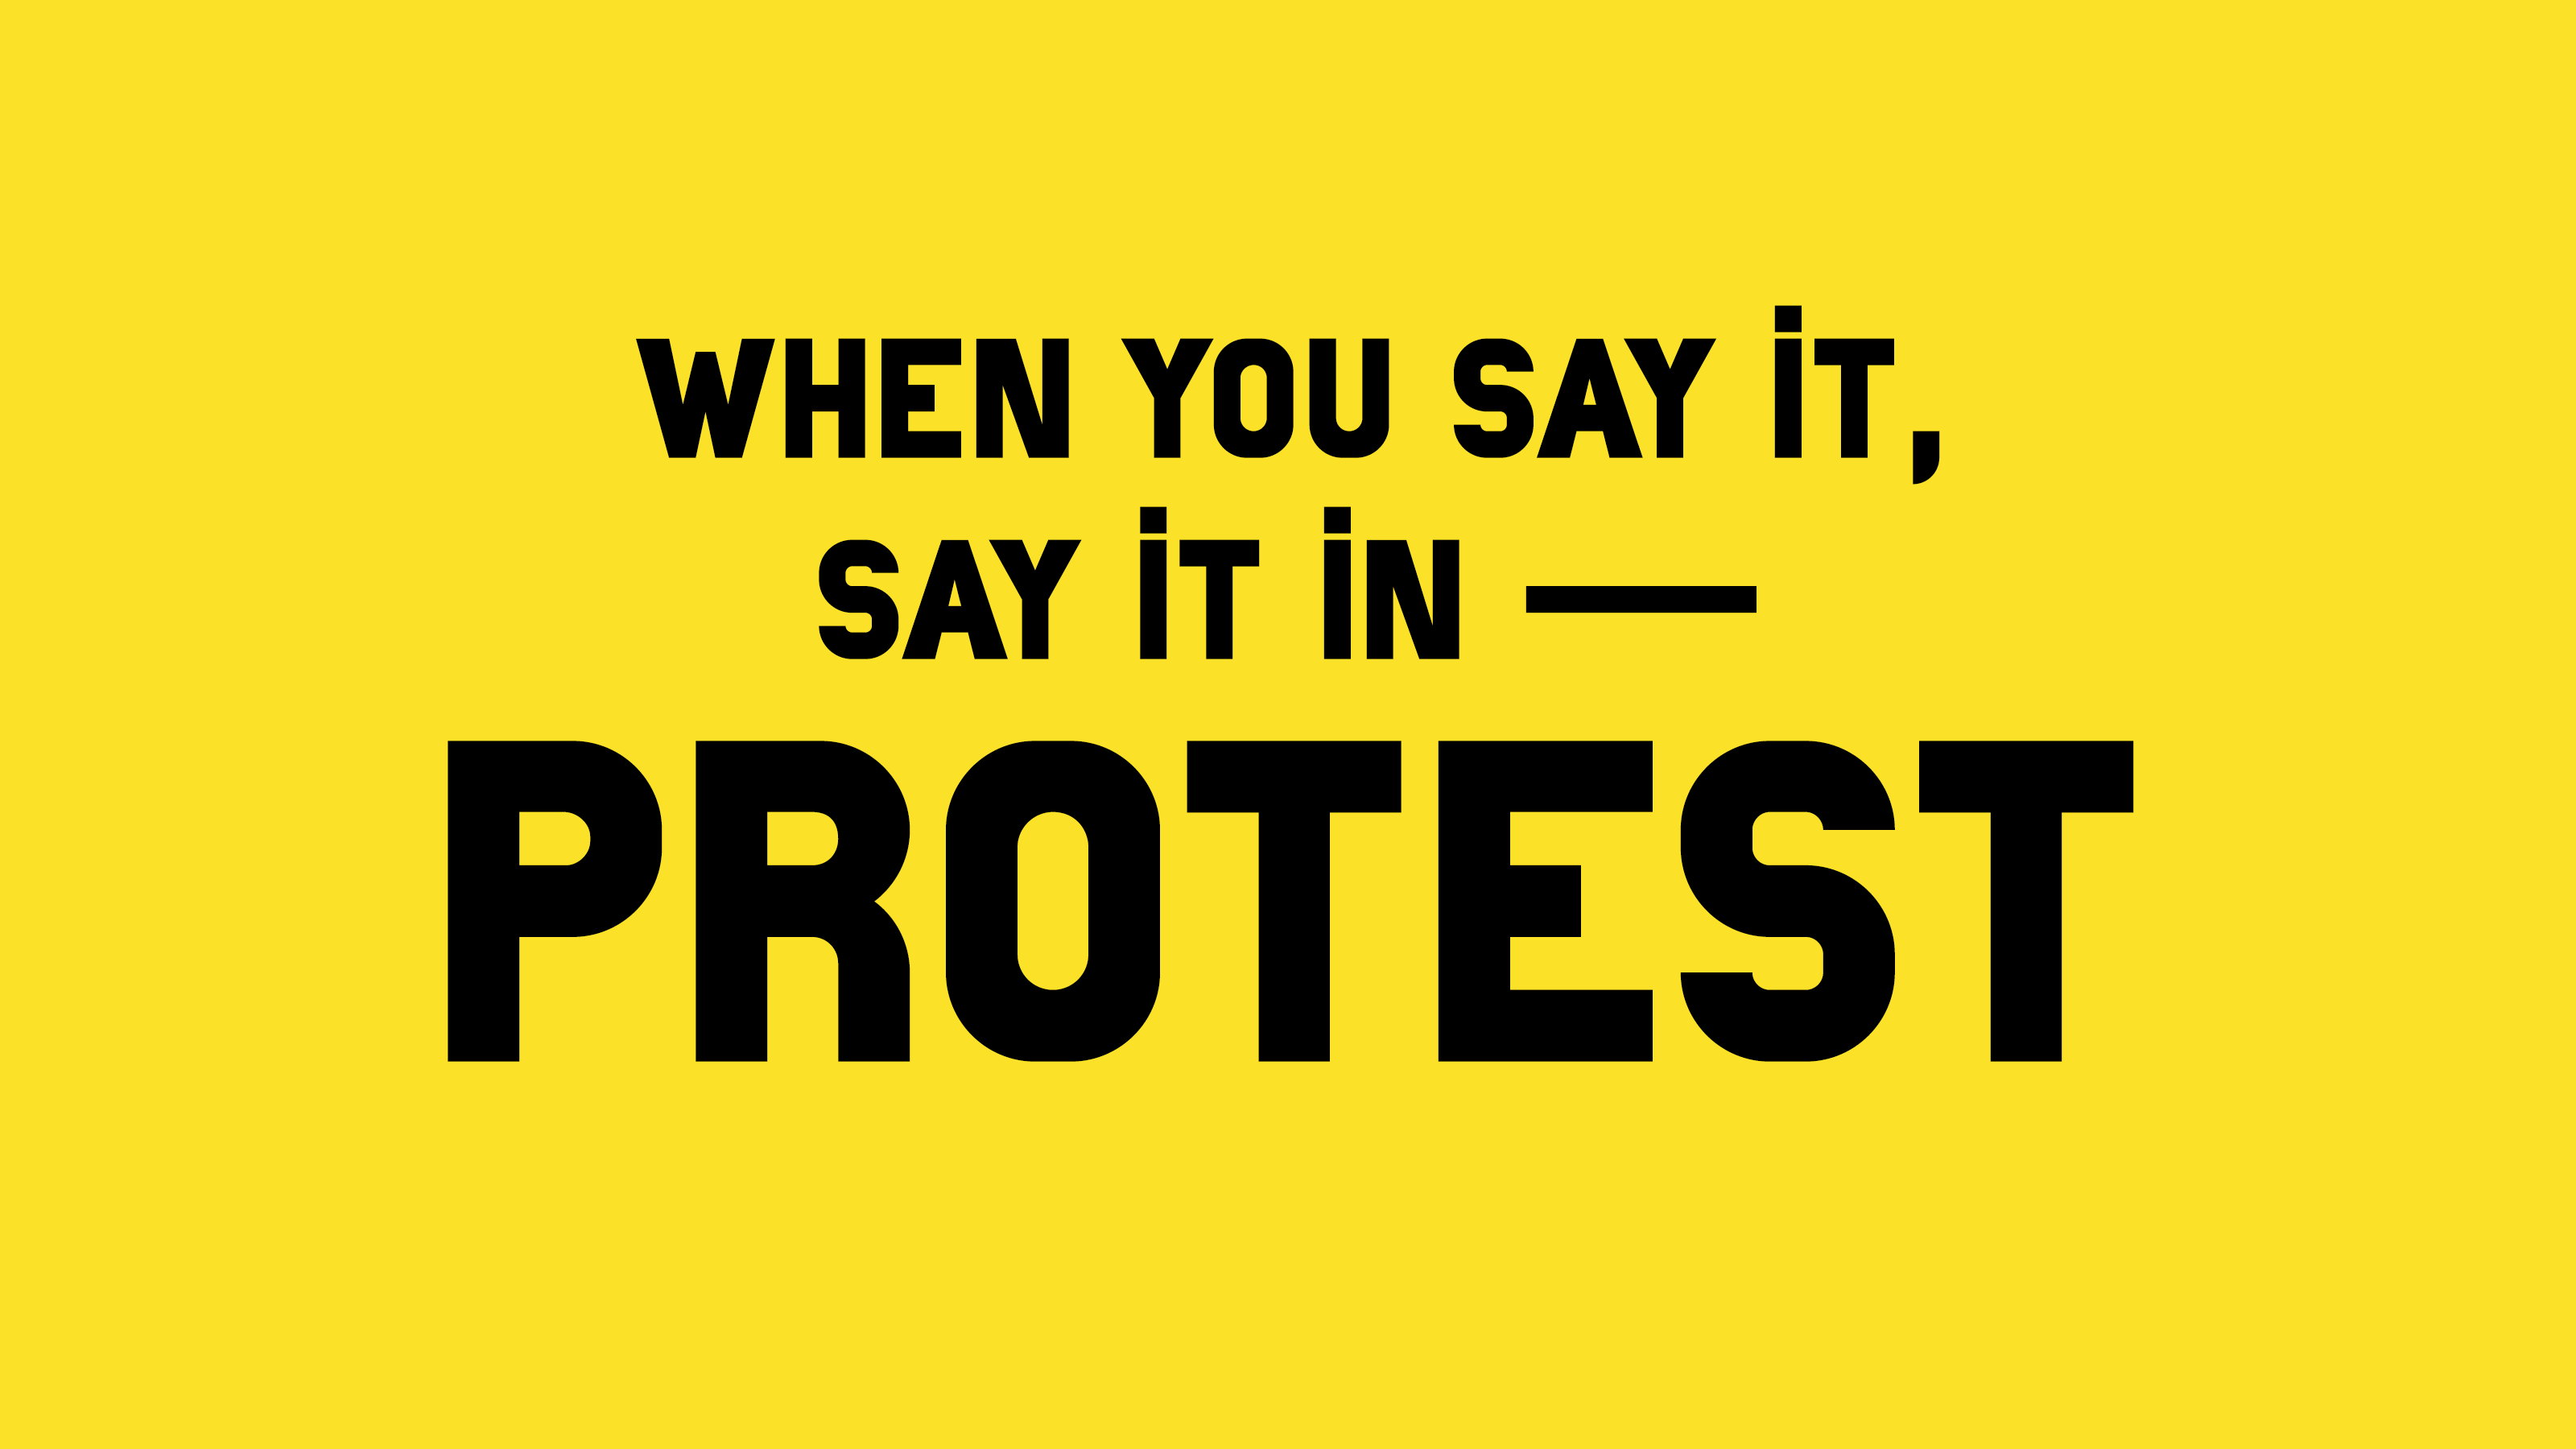 Protest9